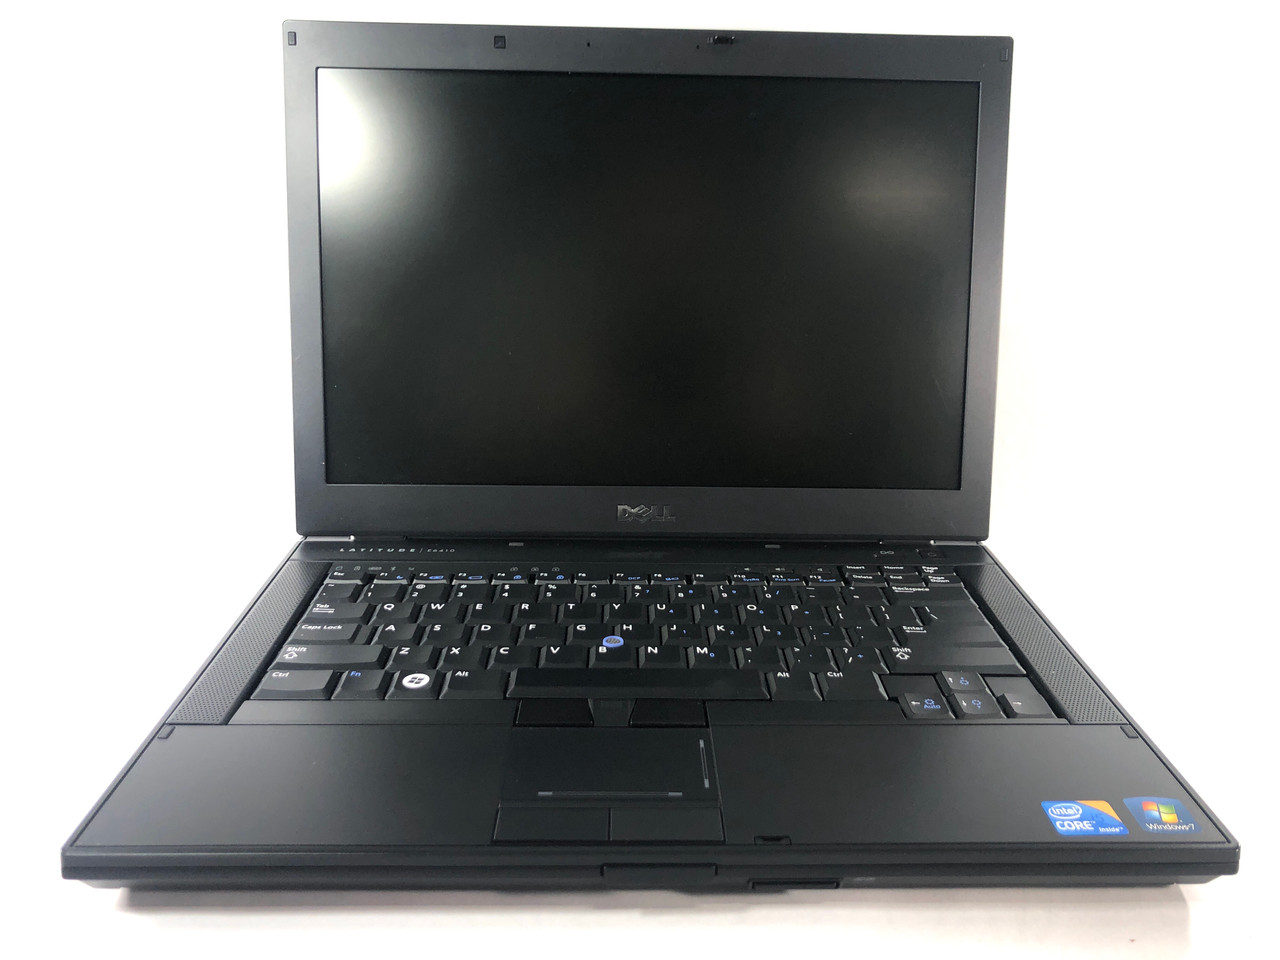 Dell E6410 Latitude Laptop i7 2 67GHZ 4GB 250GB HDD Win 7 GB